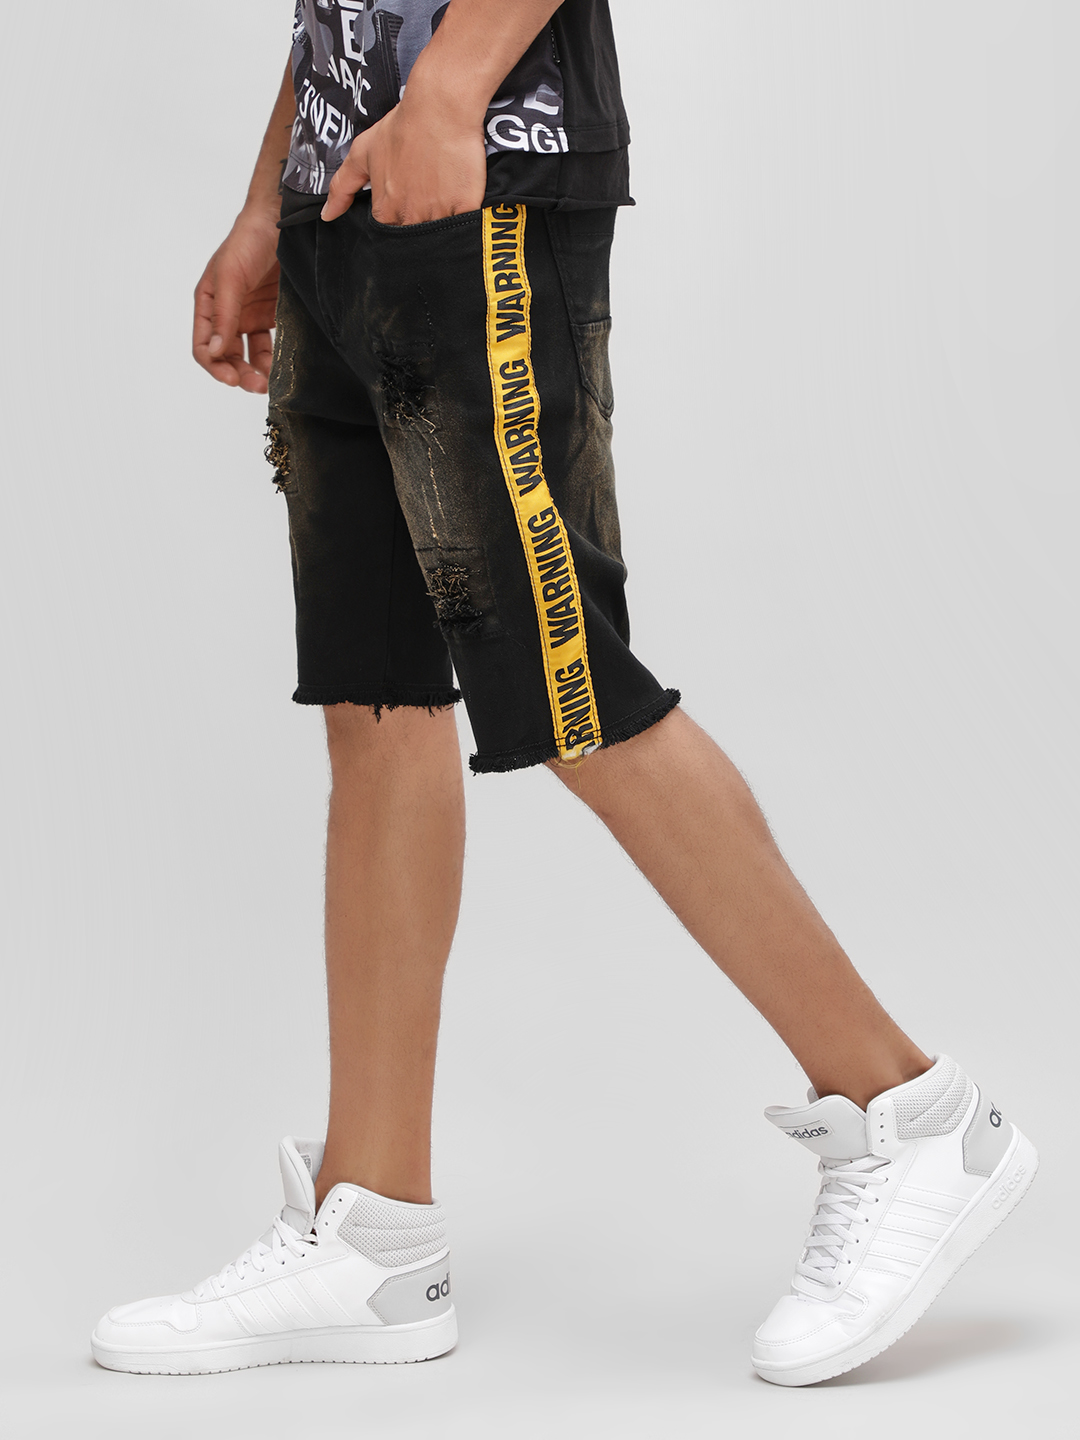 Deezeno Black Slogan Tape Distressed Denim Shorts 1